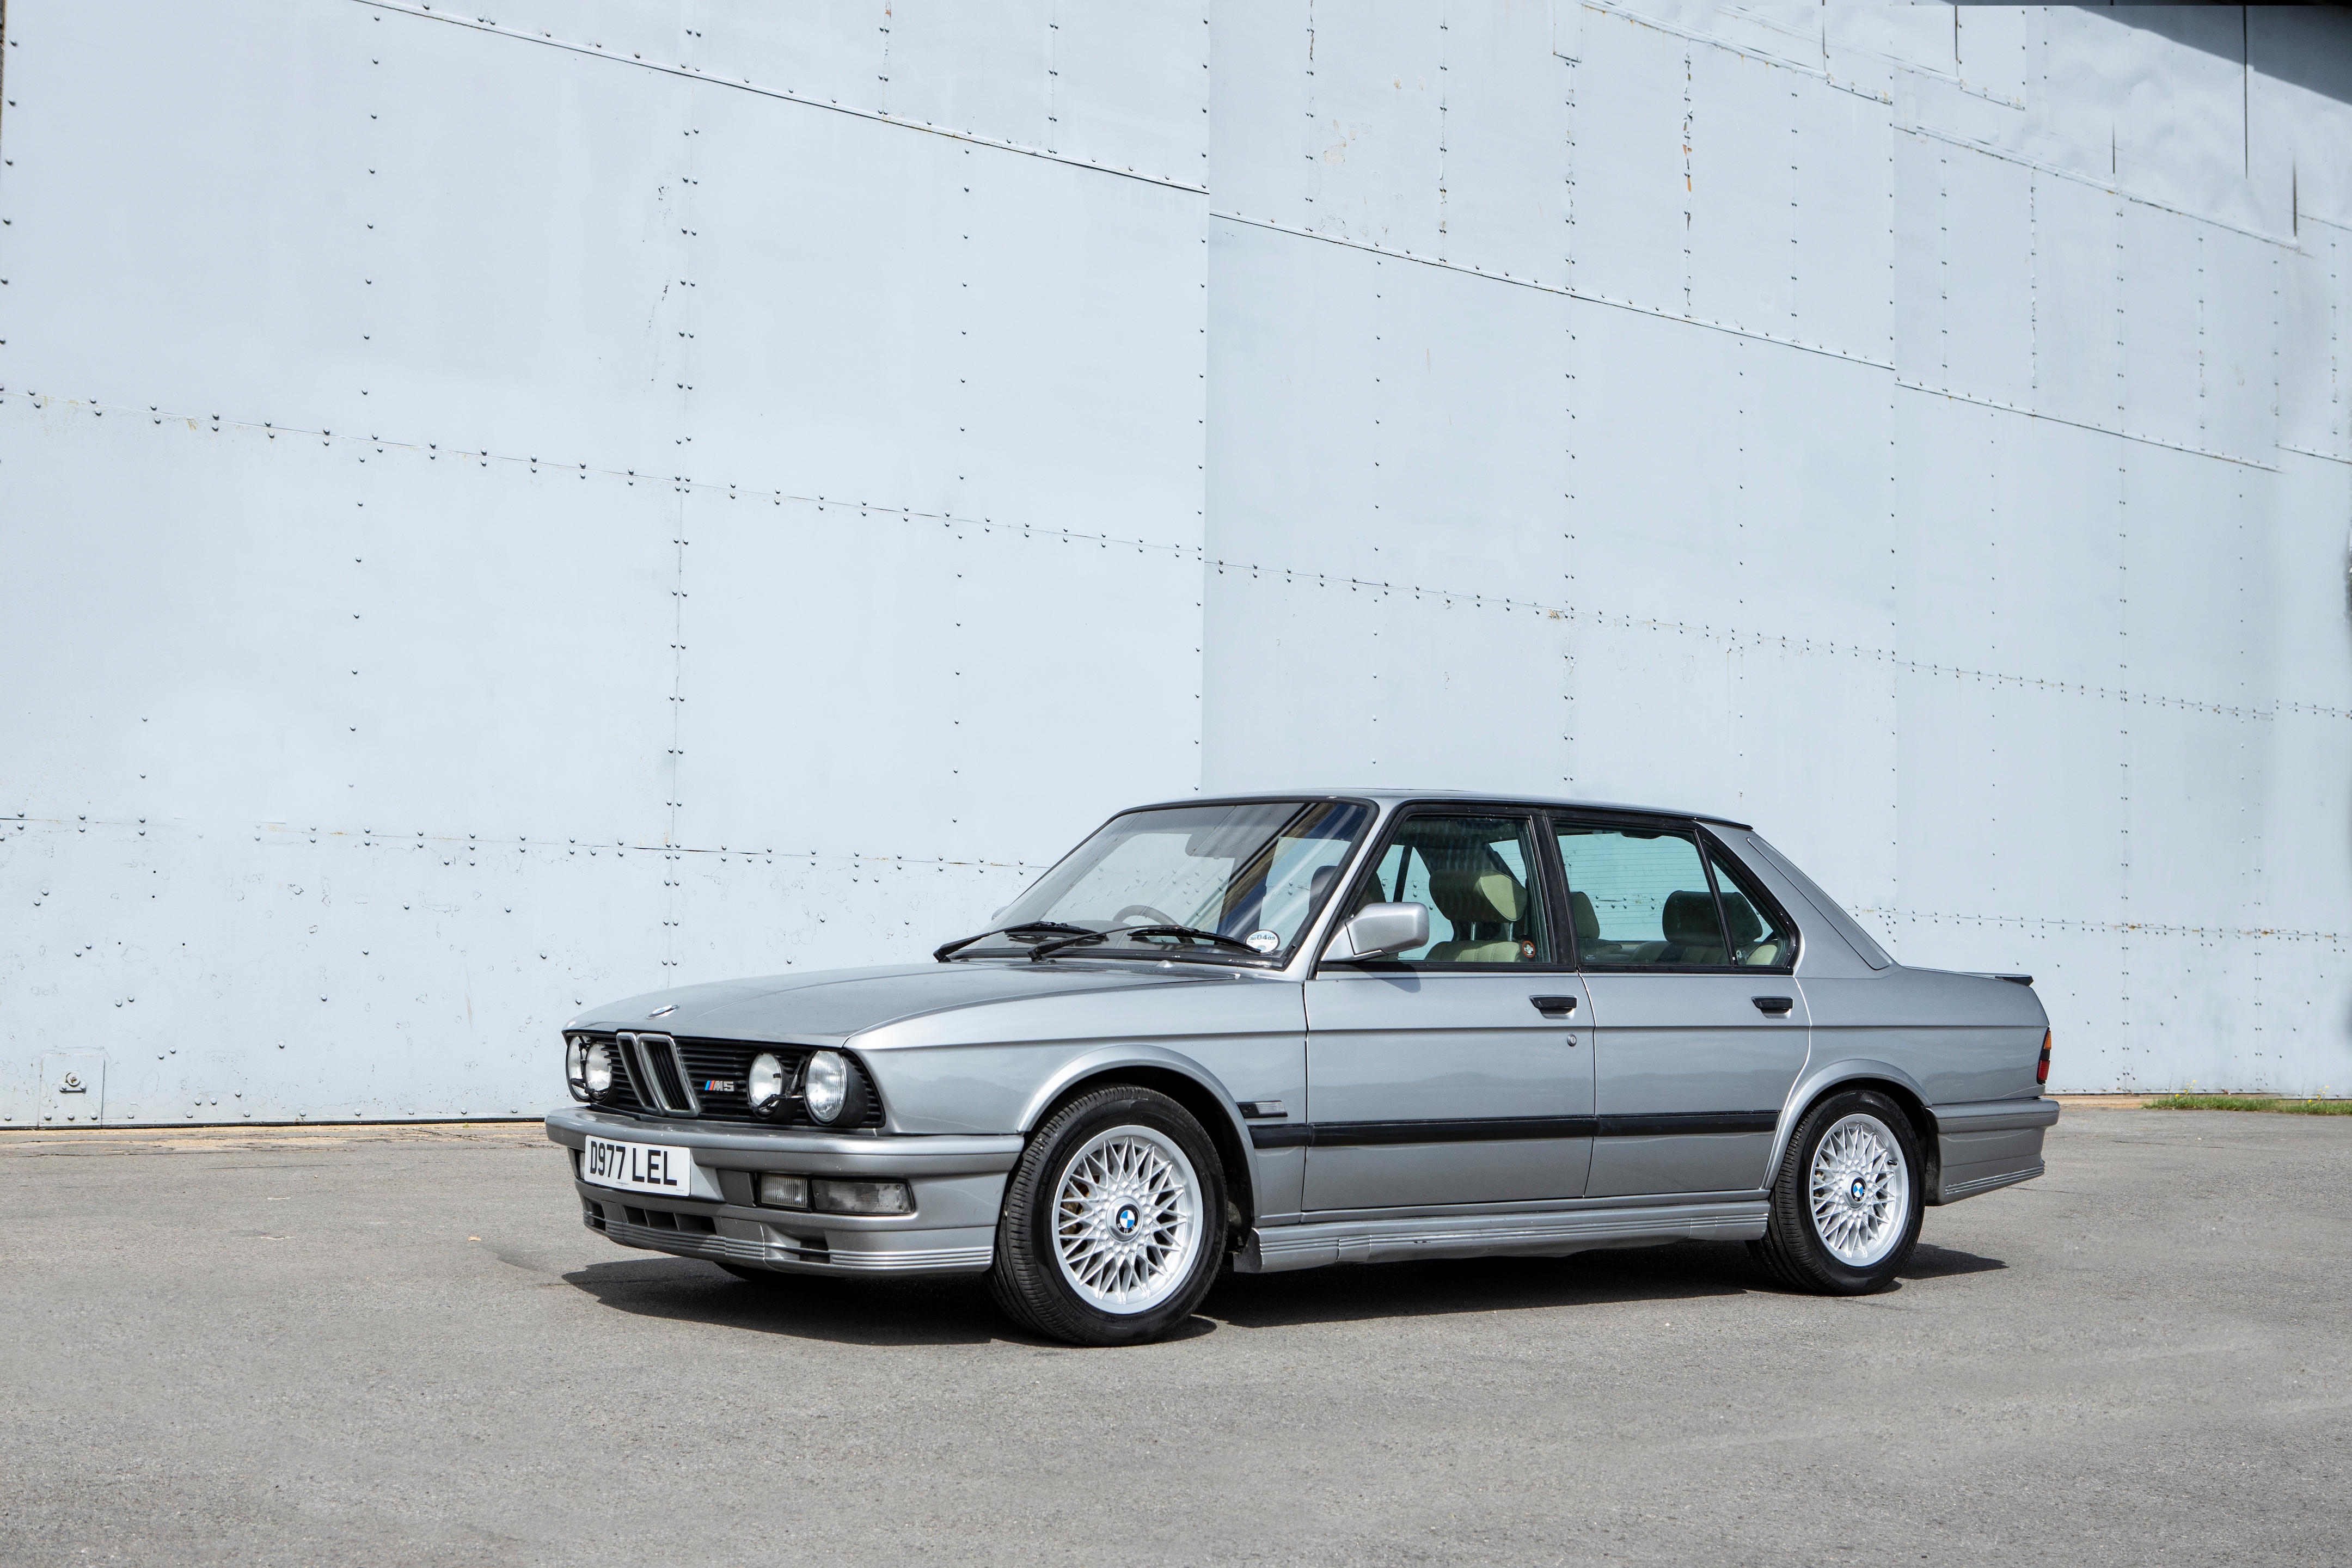 1986 BMW M5 'E28' Saloon  Chassis no. WBSDC92051679101